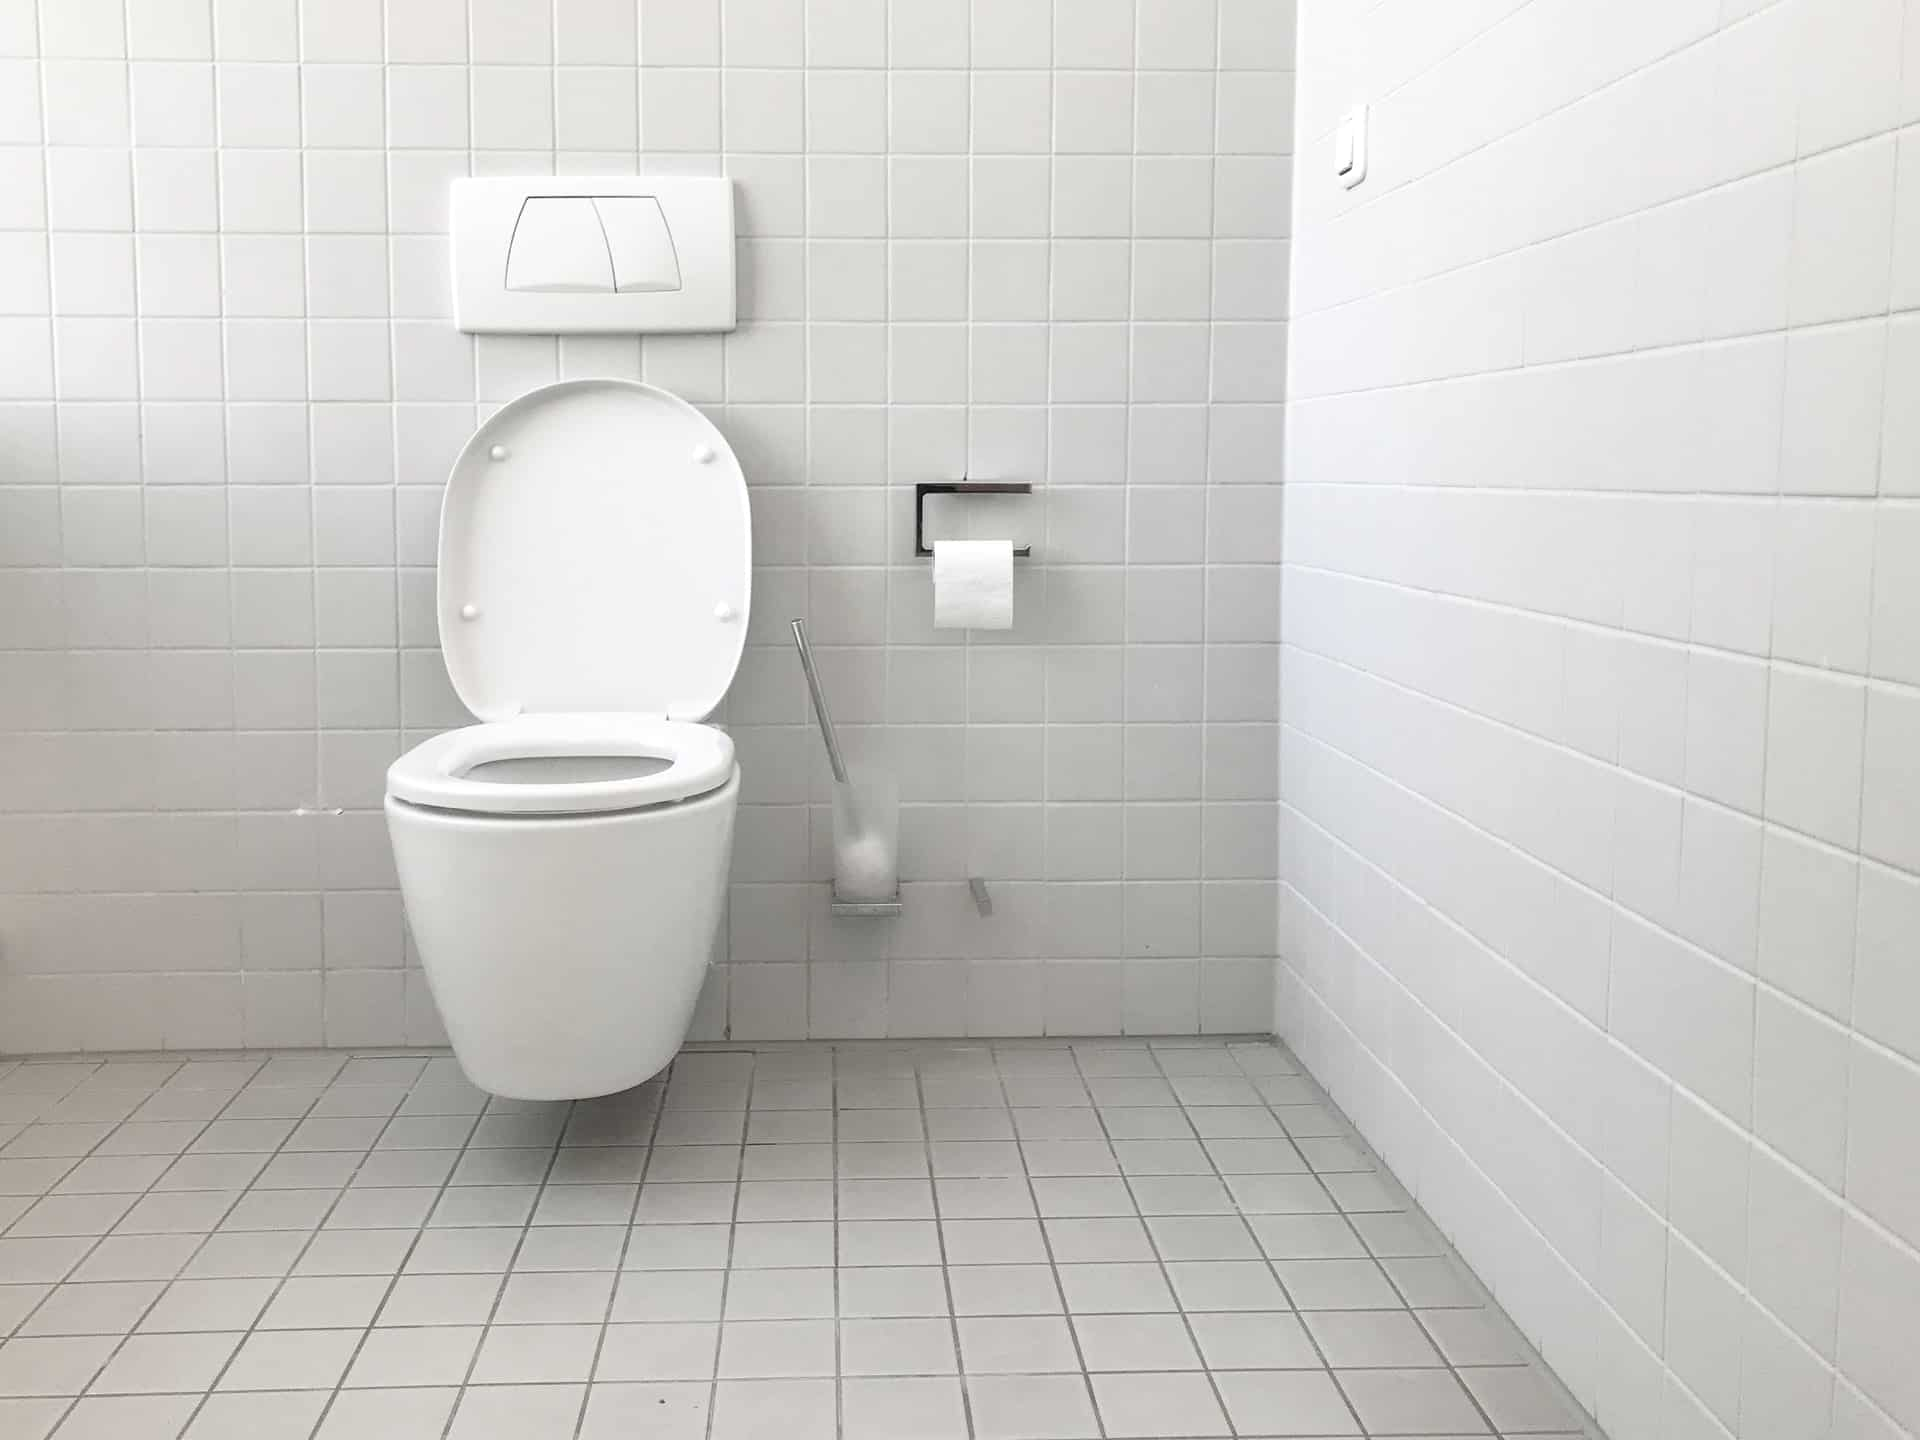 A standard height toilet in a tiled bathroom